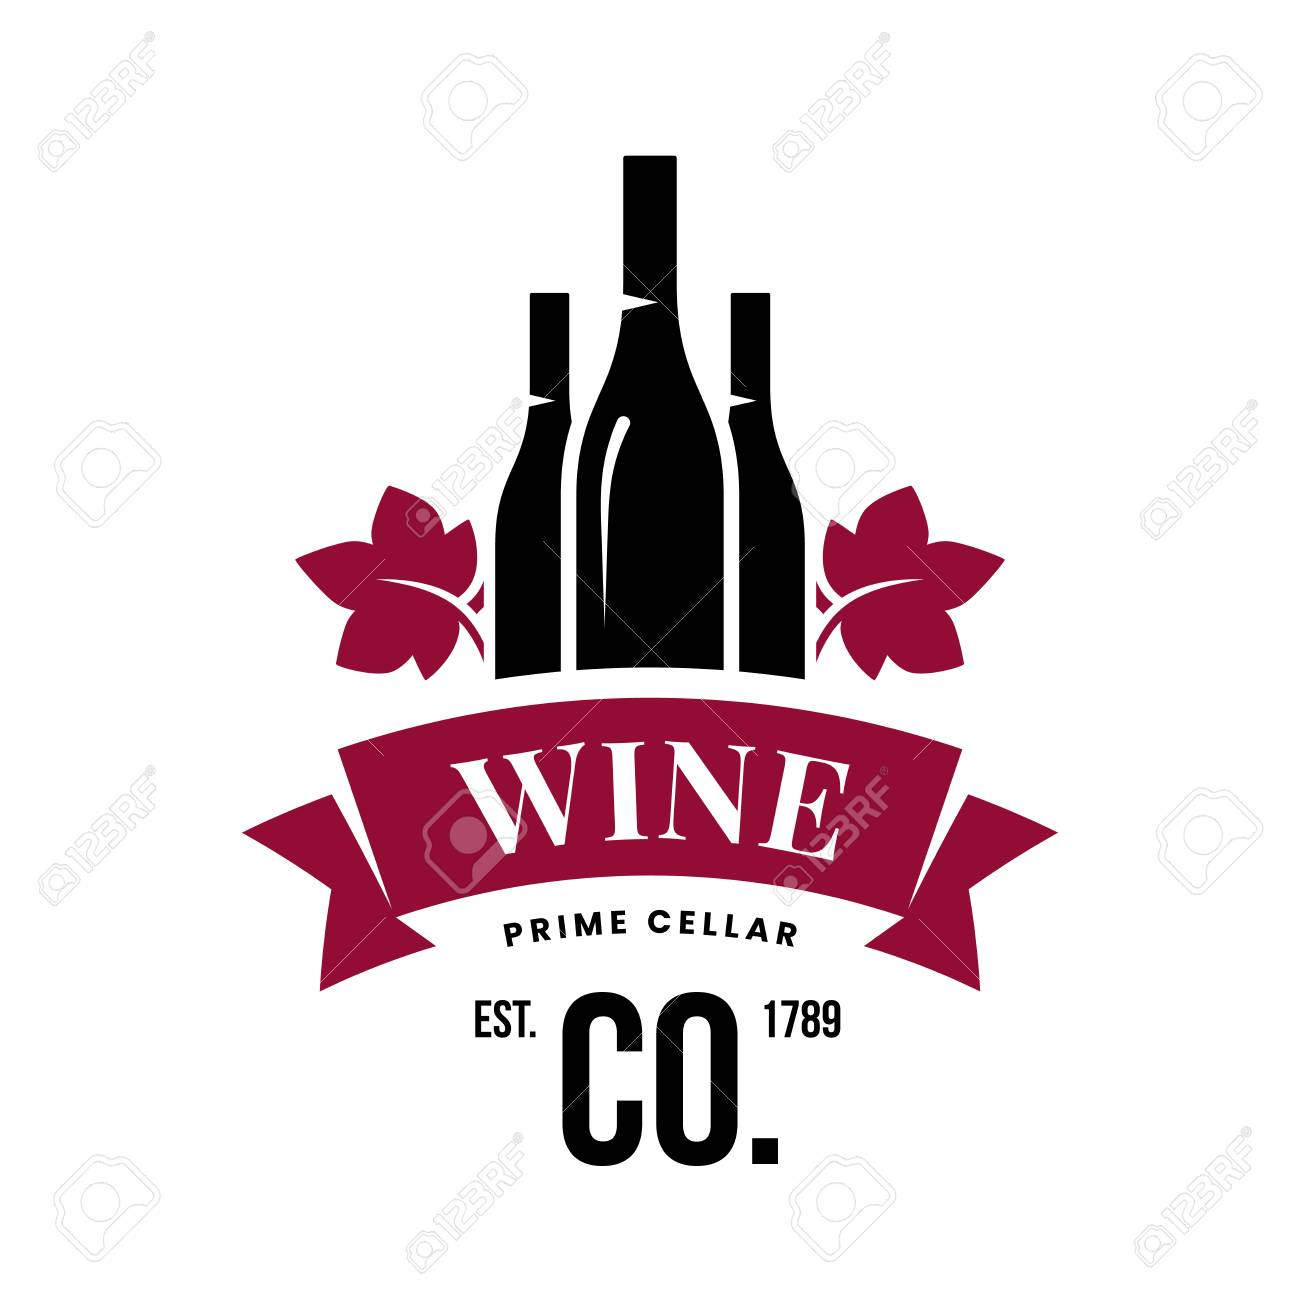 Modern wine vector logo sign for tavern, restaurant, house, shop, store, club and cellar isolated on white background. Premium quality vinery logotype illustration. Fashion brand badge design template. - 126498902